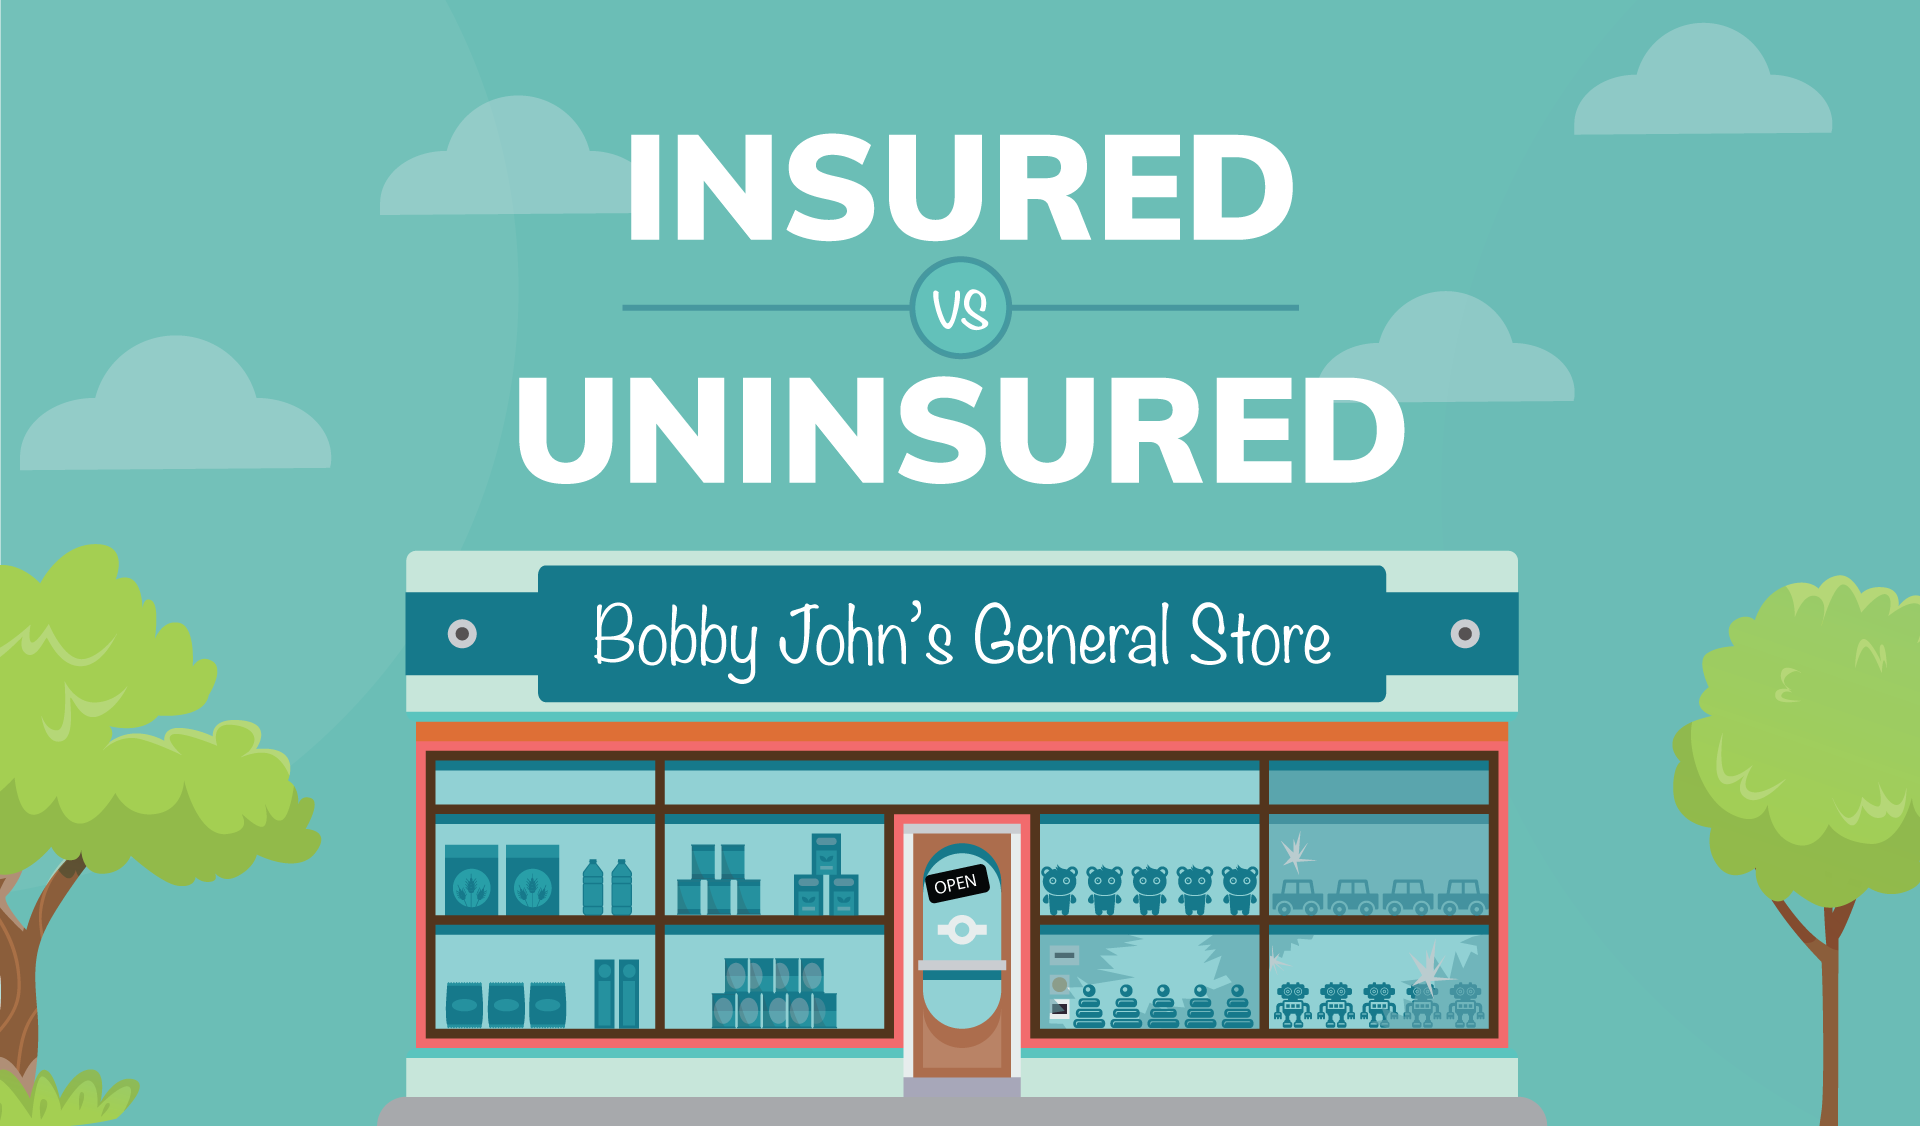 Uninsured Image